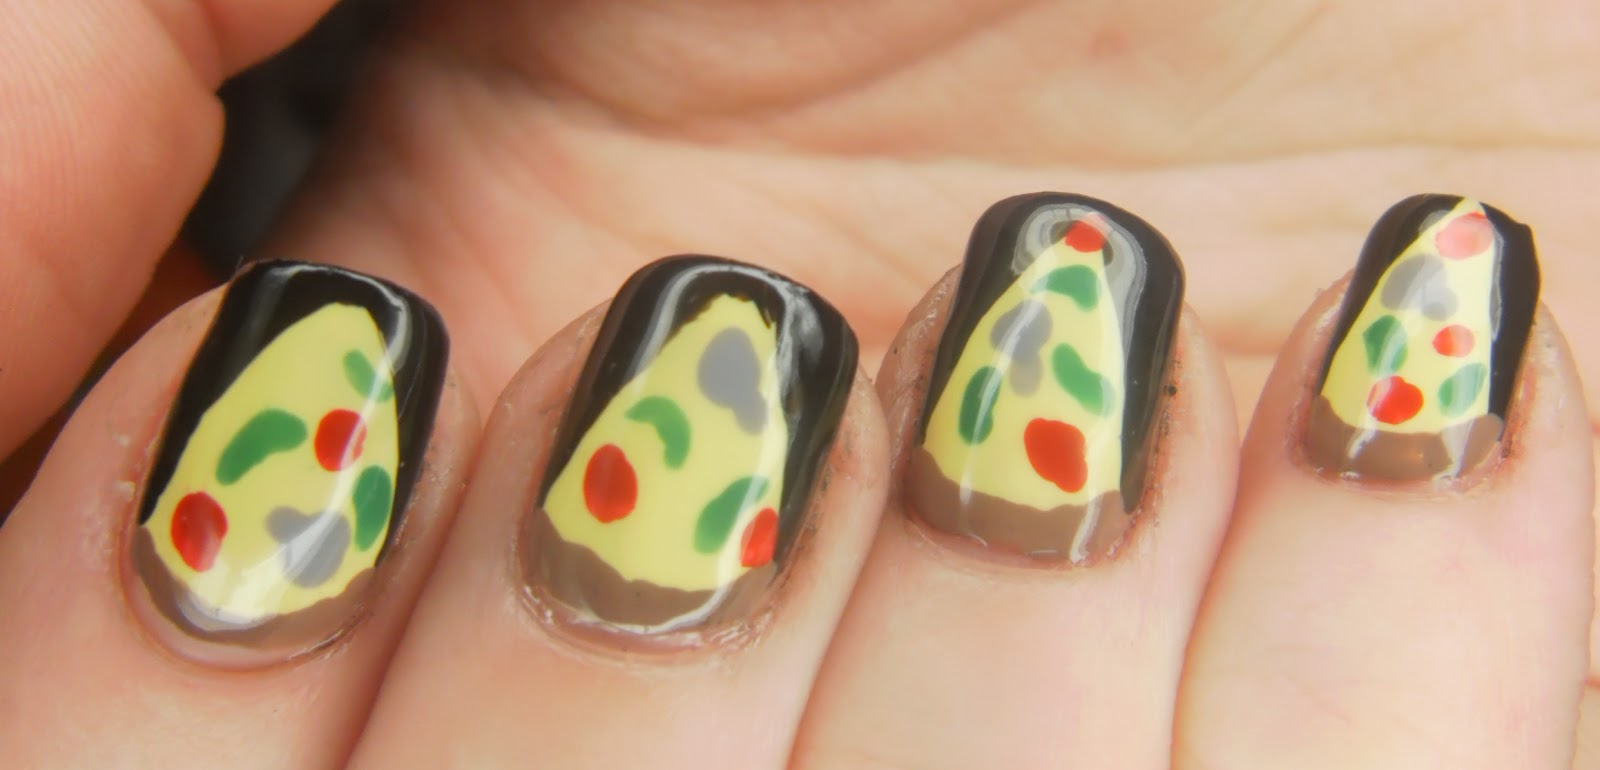 SpecialGirl Nails: Fast Food Nails - Pizza